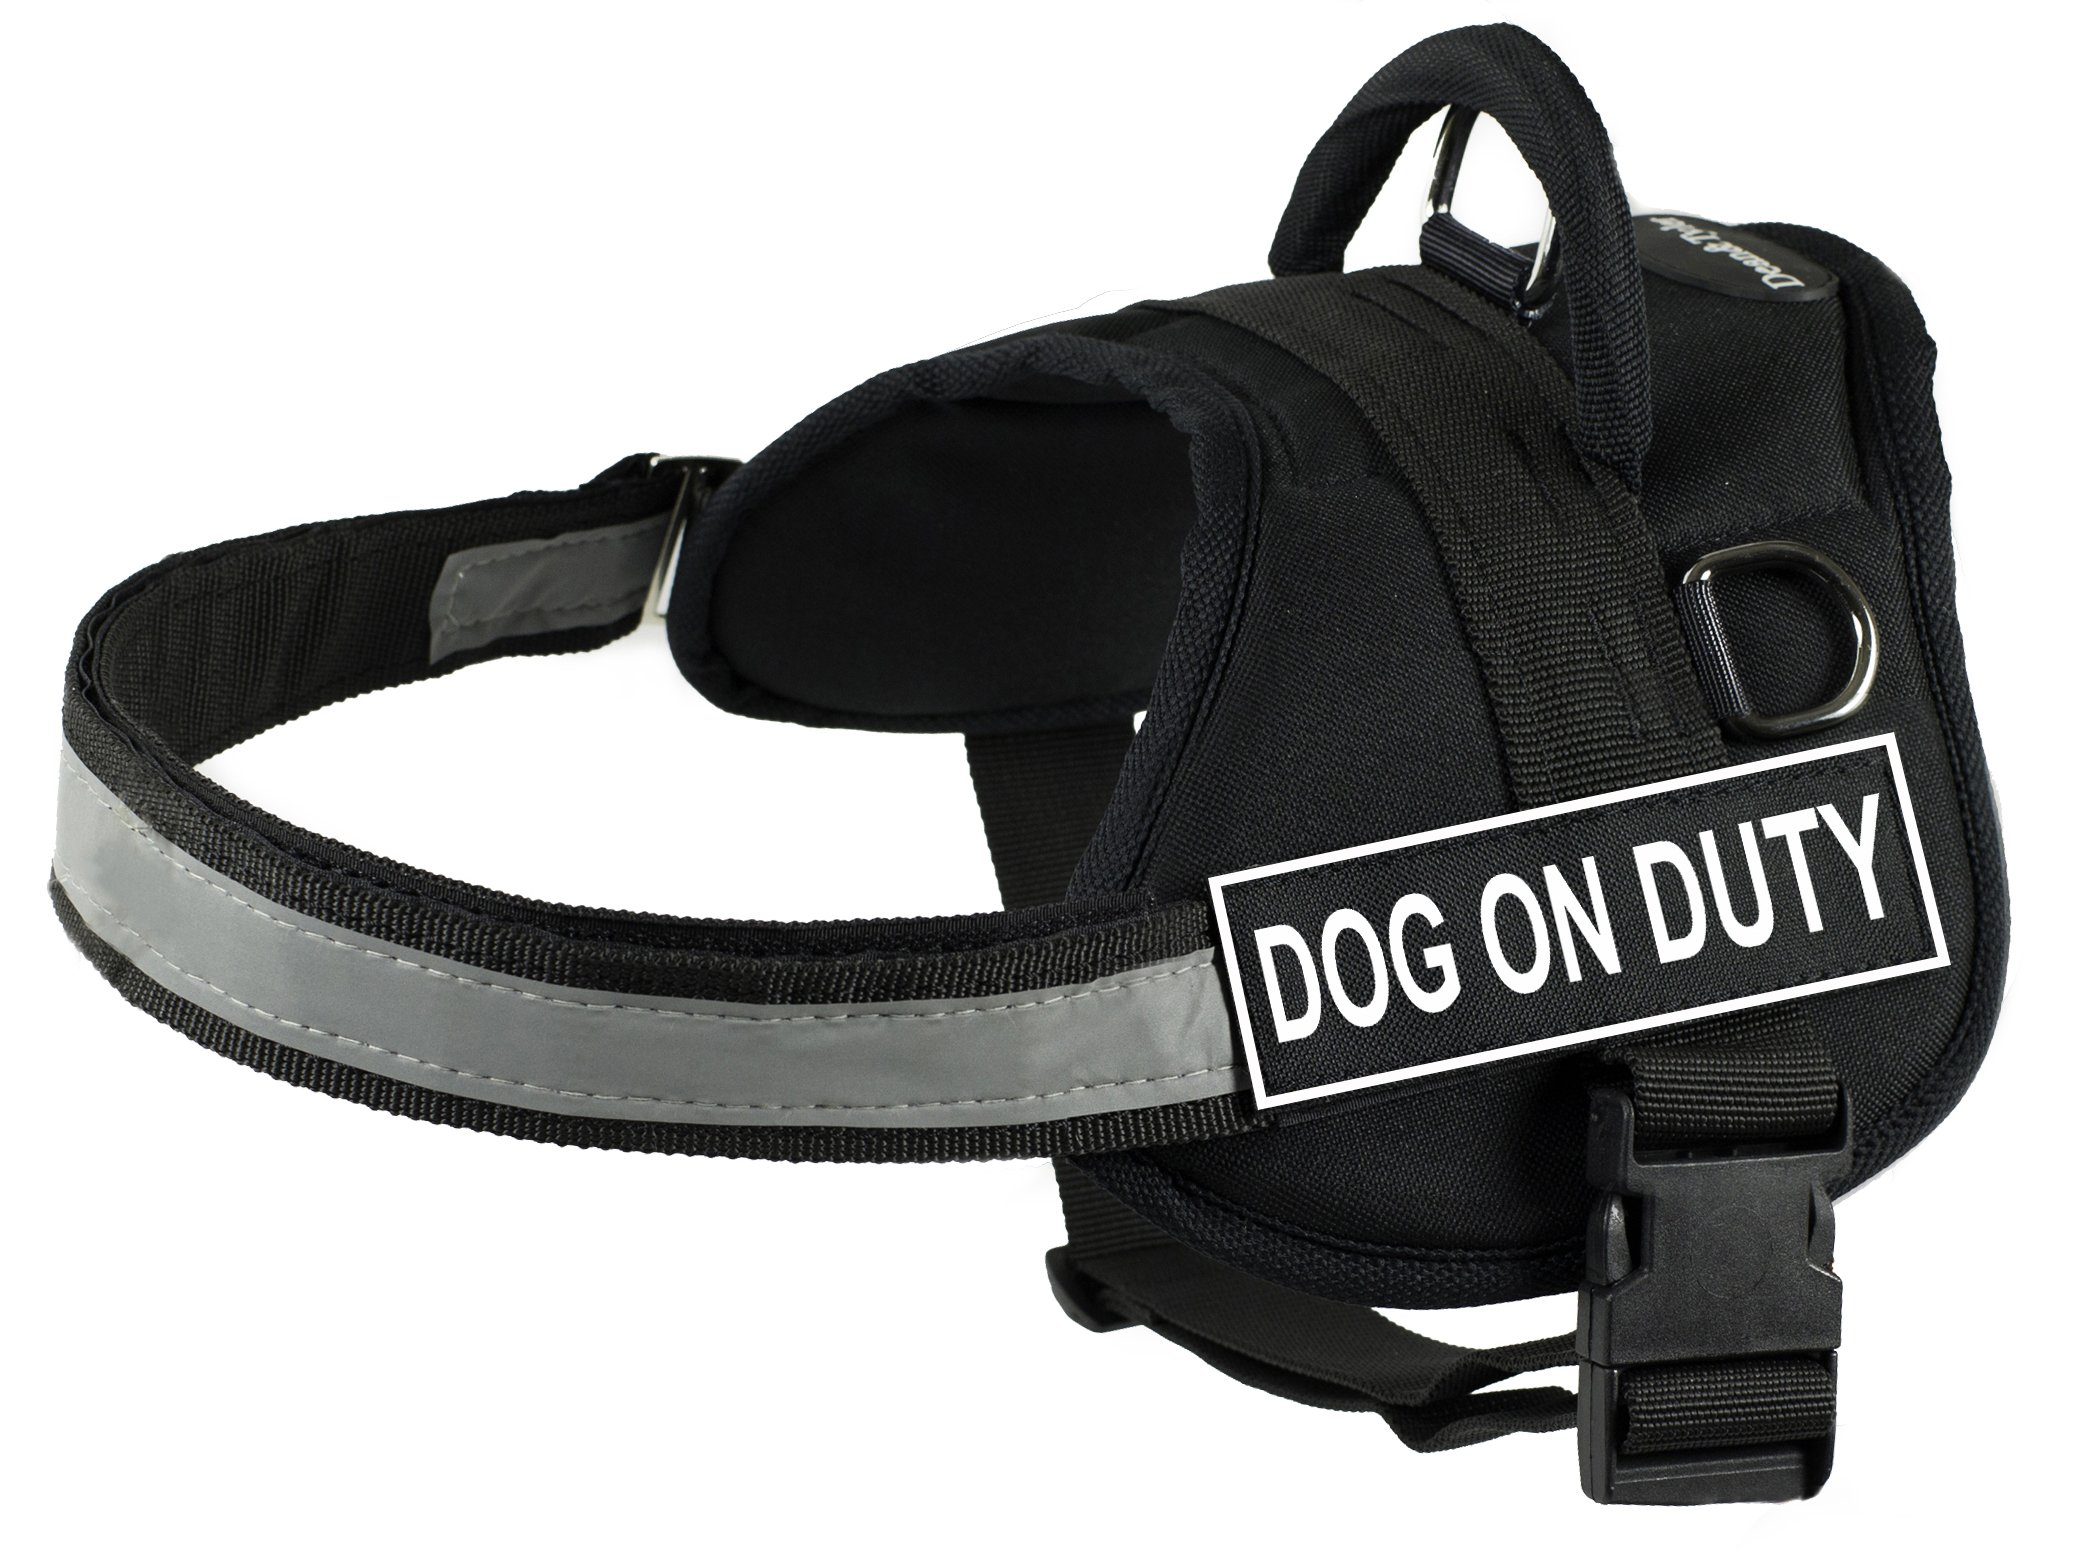 DT Works Harness, Dog On Duty, Black/White, Small - Fits Girth Size: 25-Inch to 34-Inch